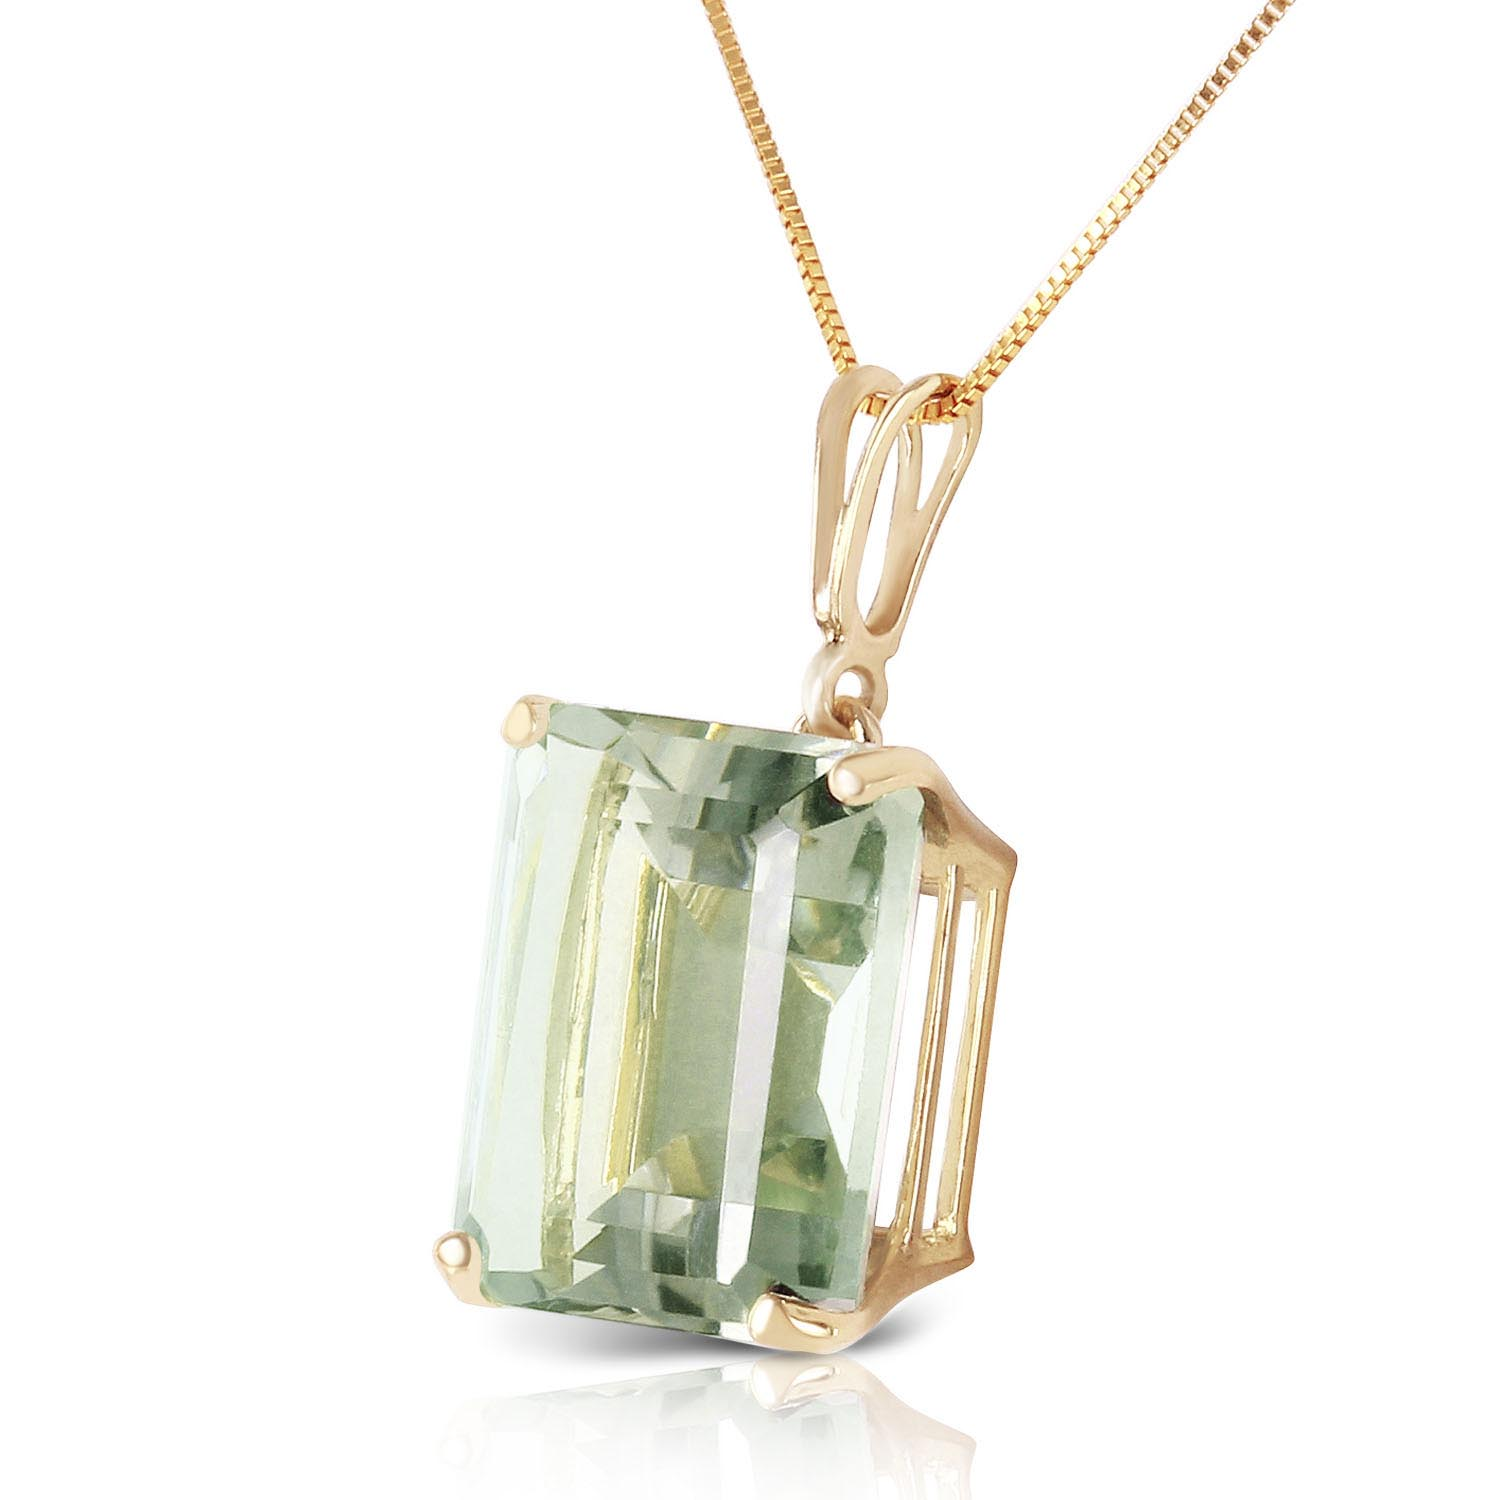 Green Amethyst Pendant Necklace 6.5ct in 9ct Gold